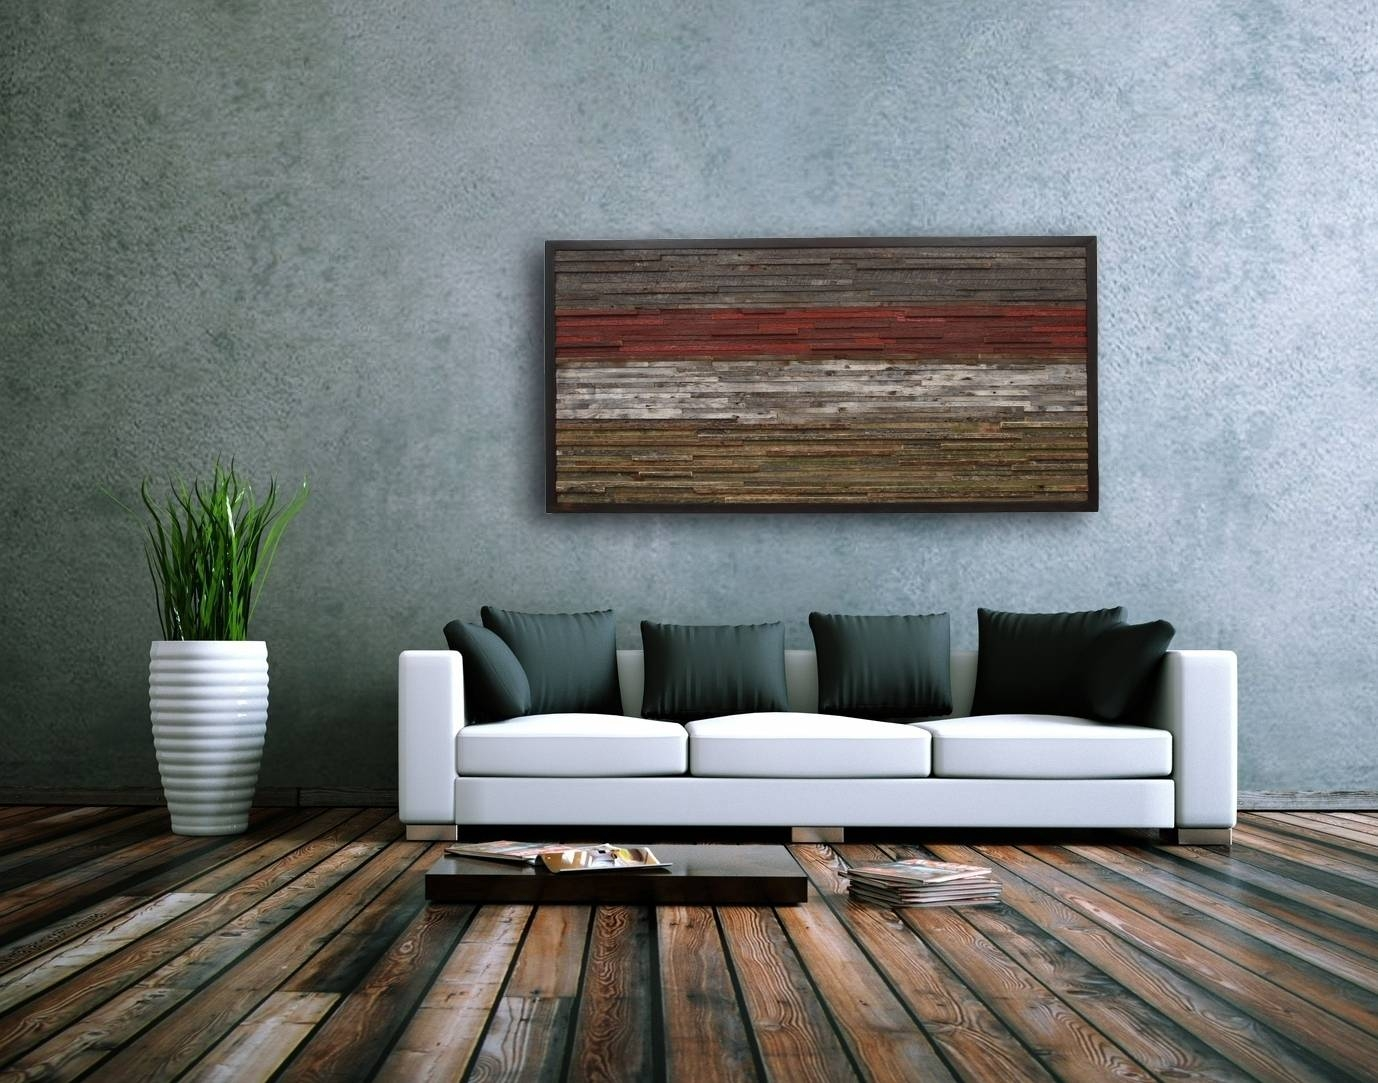 Wall Ideas: Industrial Metal Wall Art Pictures (View 20 of 20)